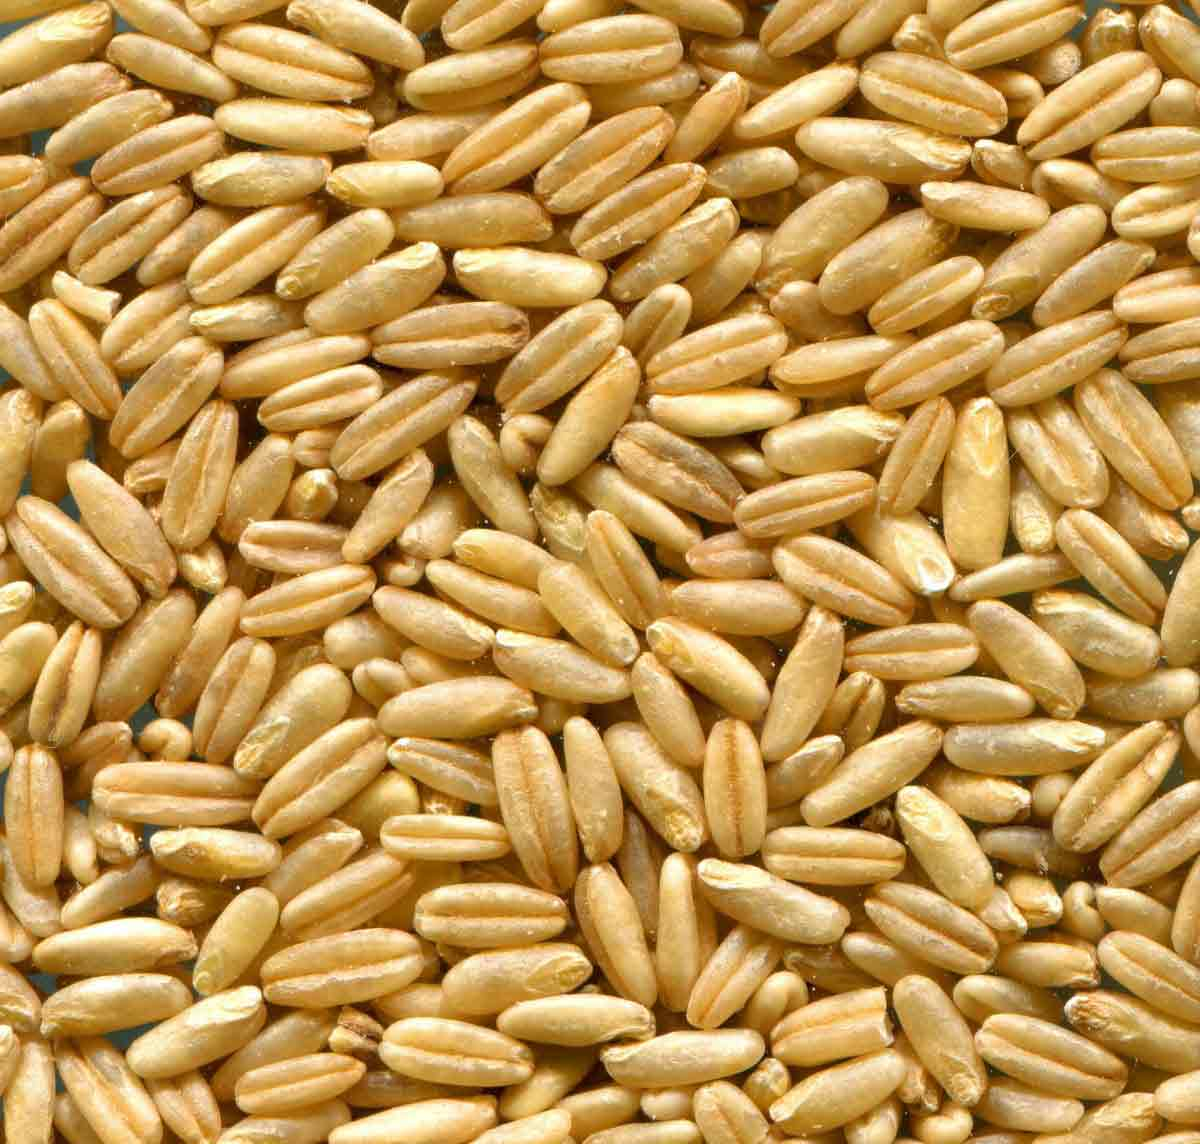 Can I feed straight oats?